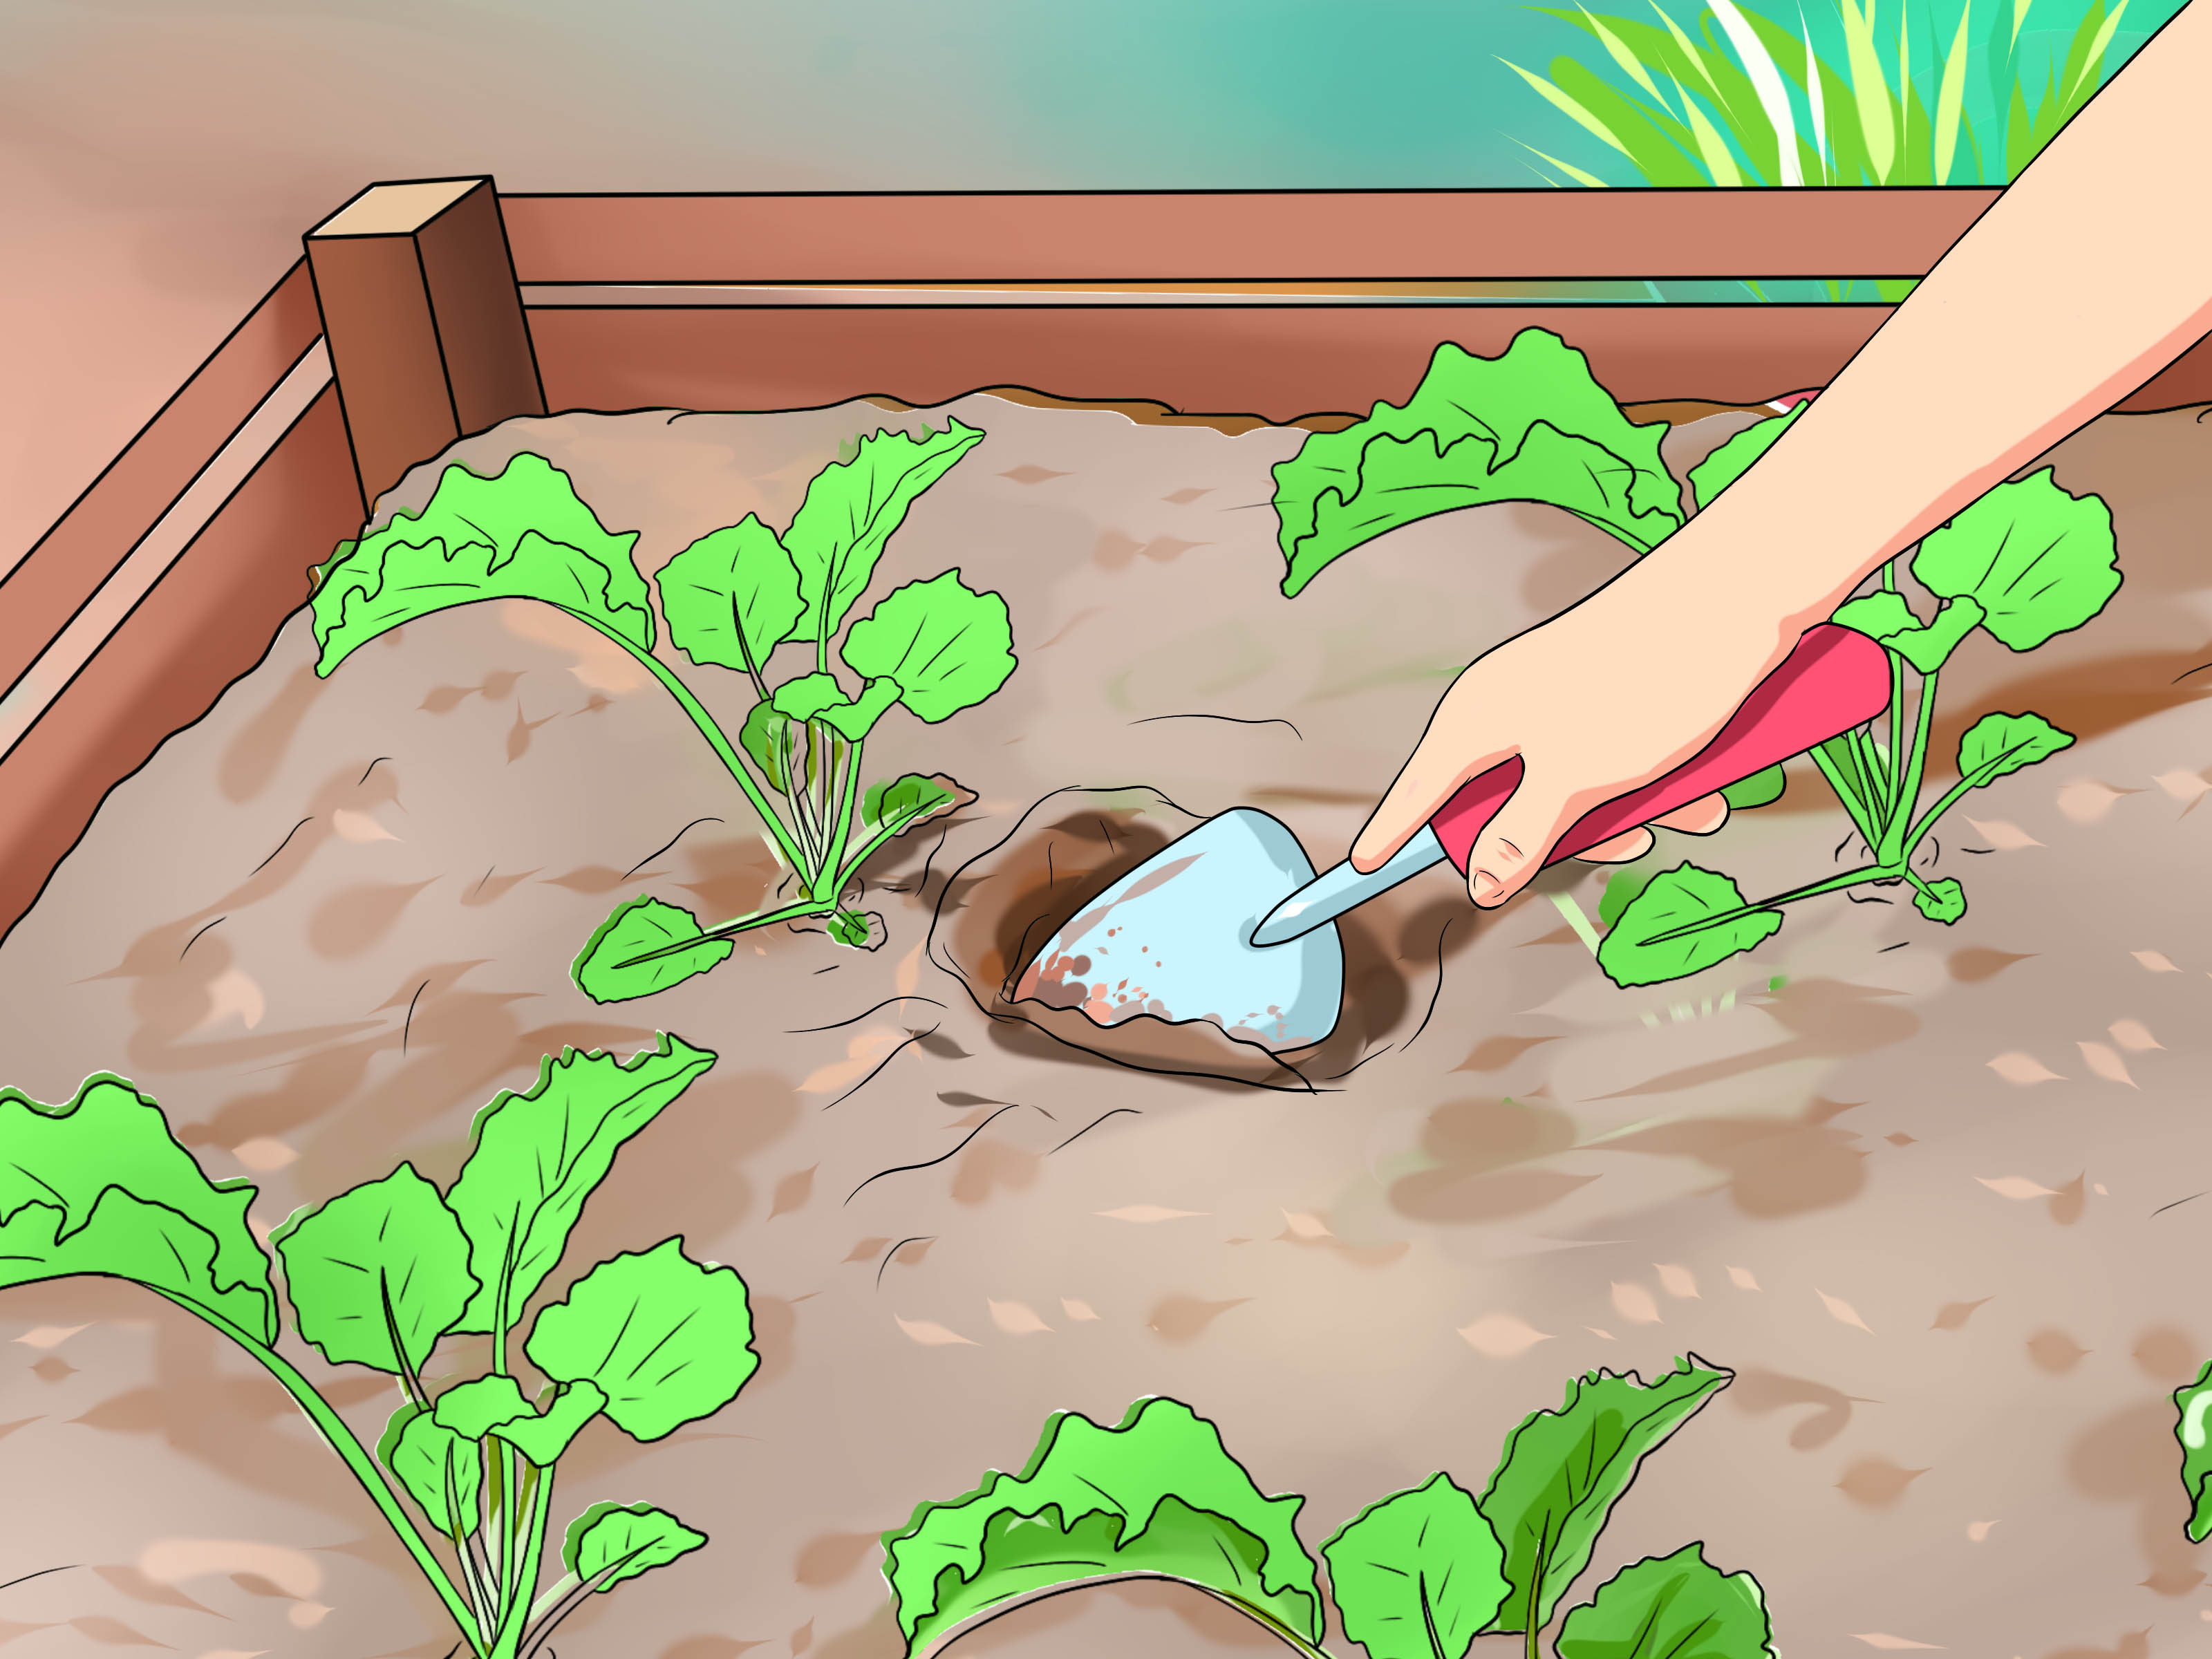 Water Clipart For Nursery Plant 10 Free Cliparts